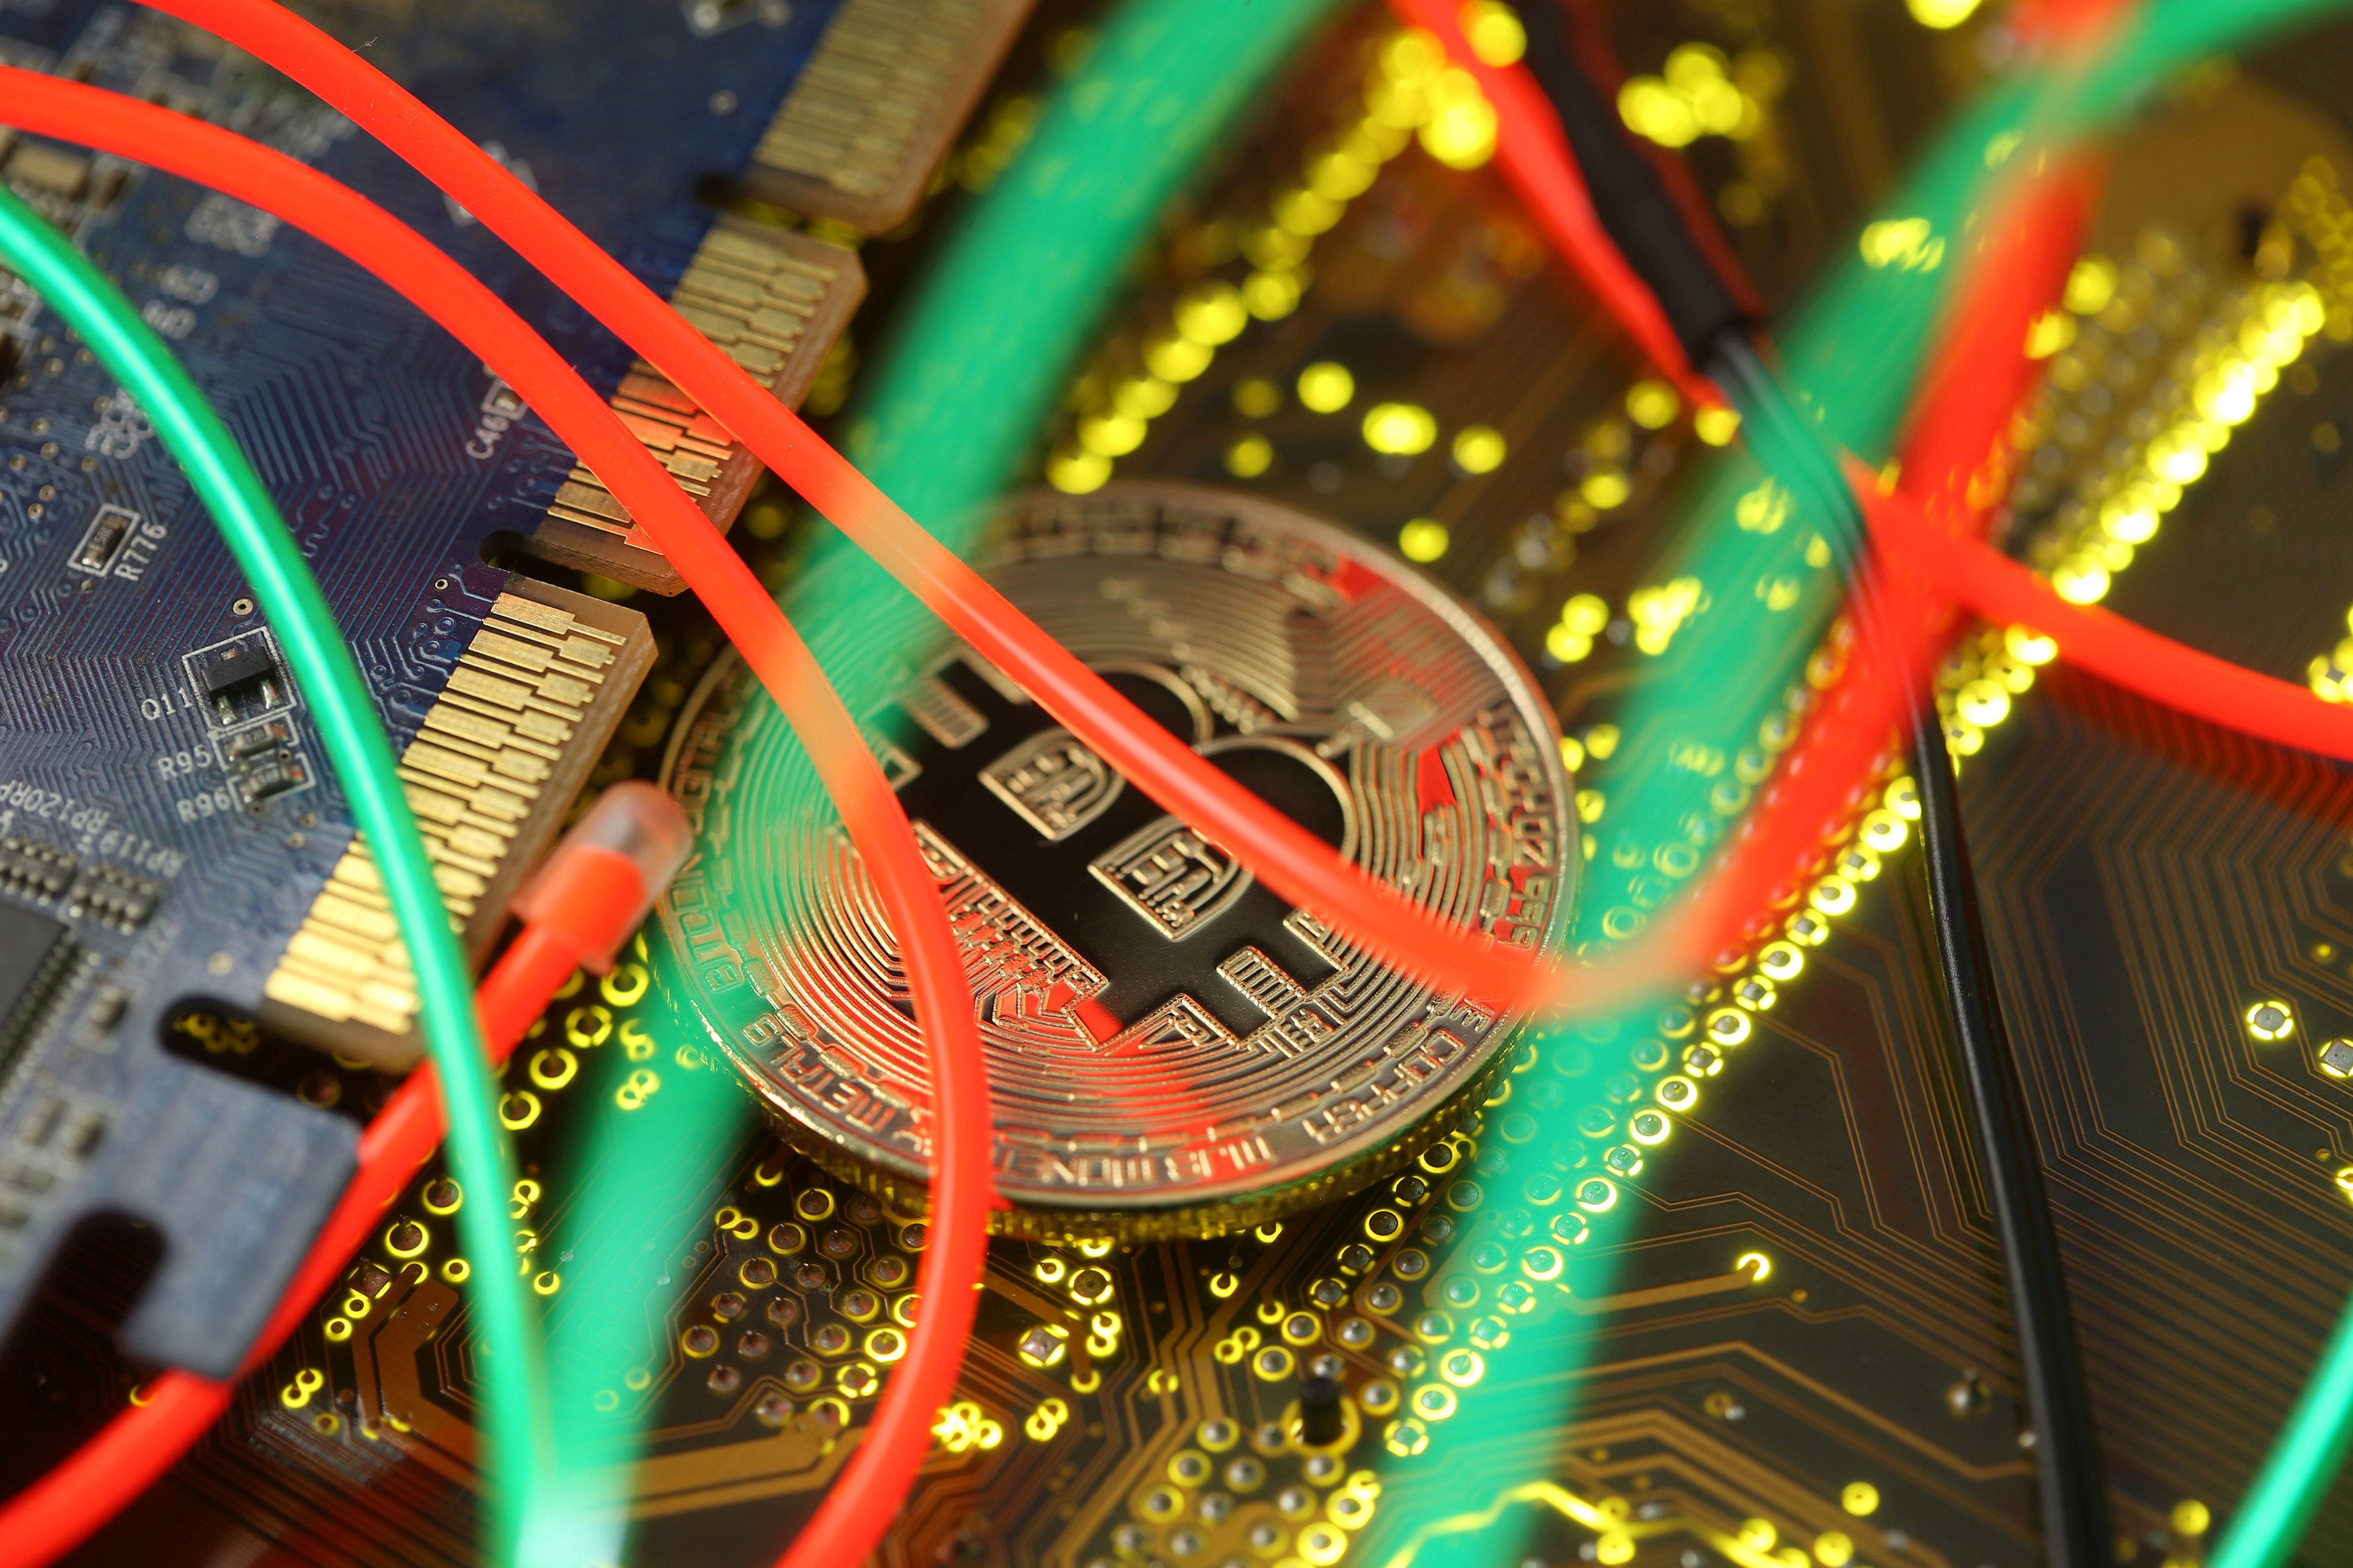 U.S., UK government websites infected with crypto-mining malware: report